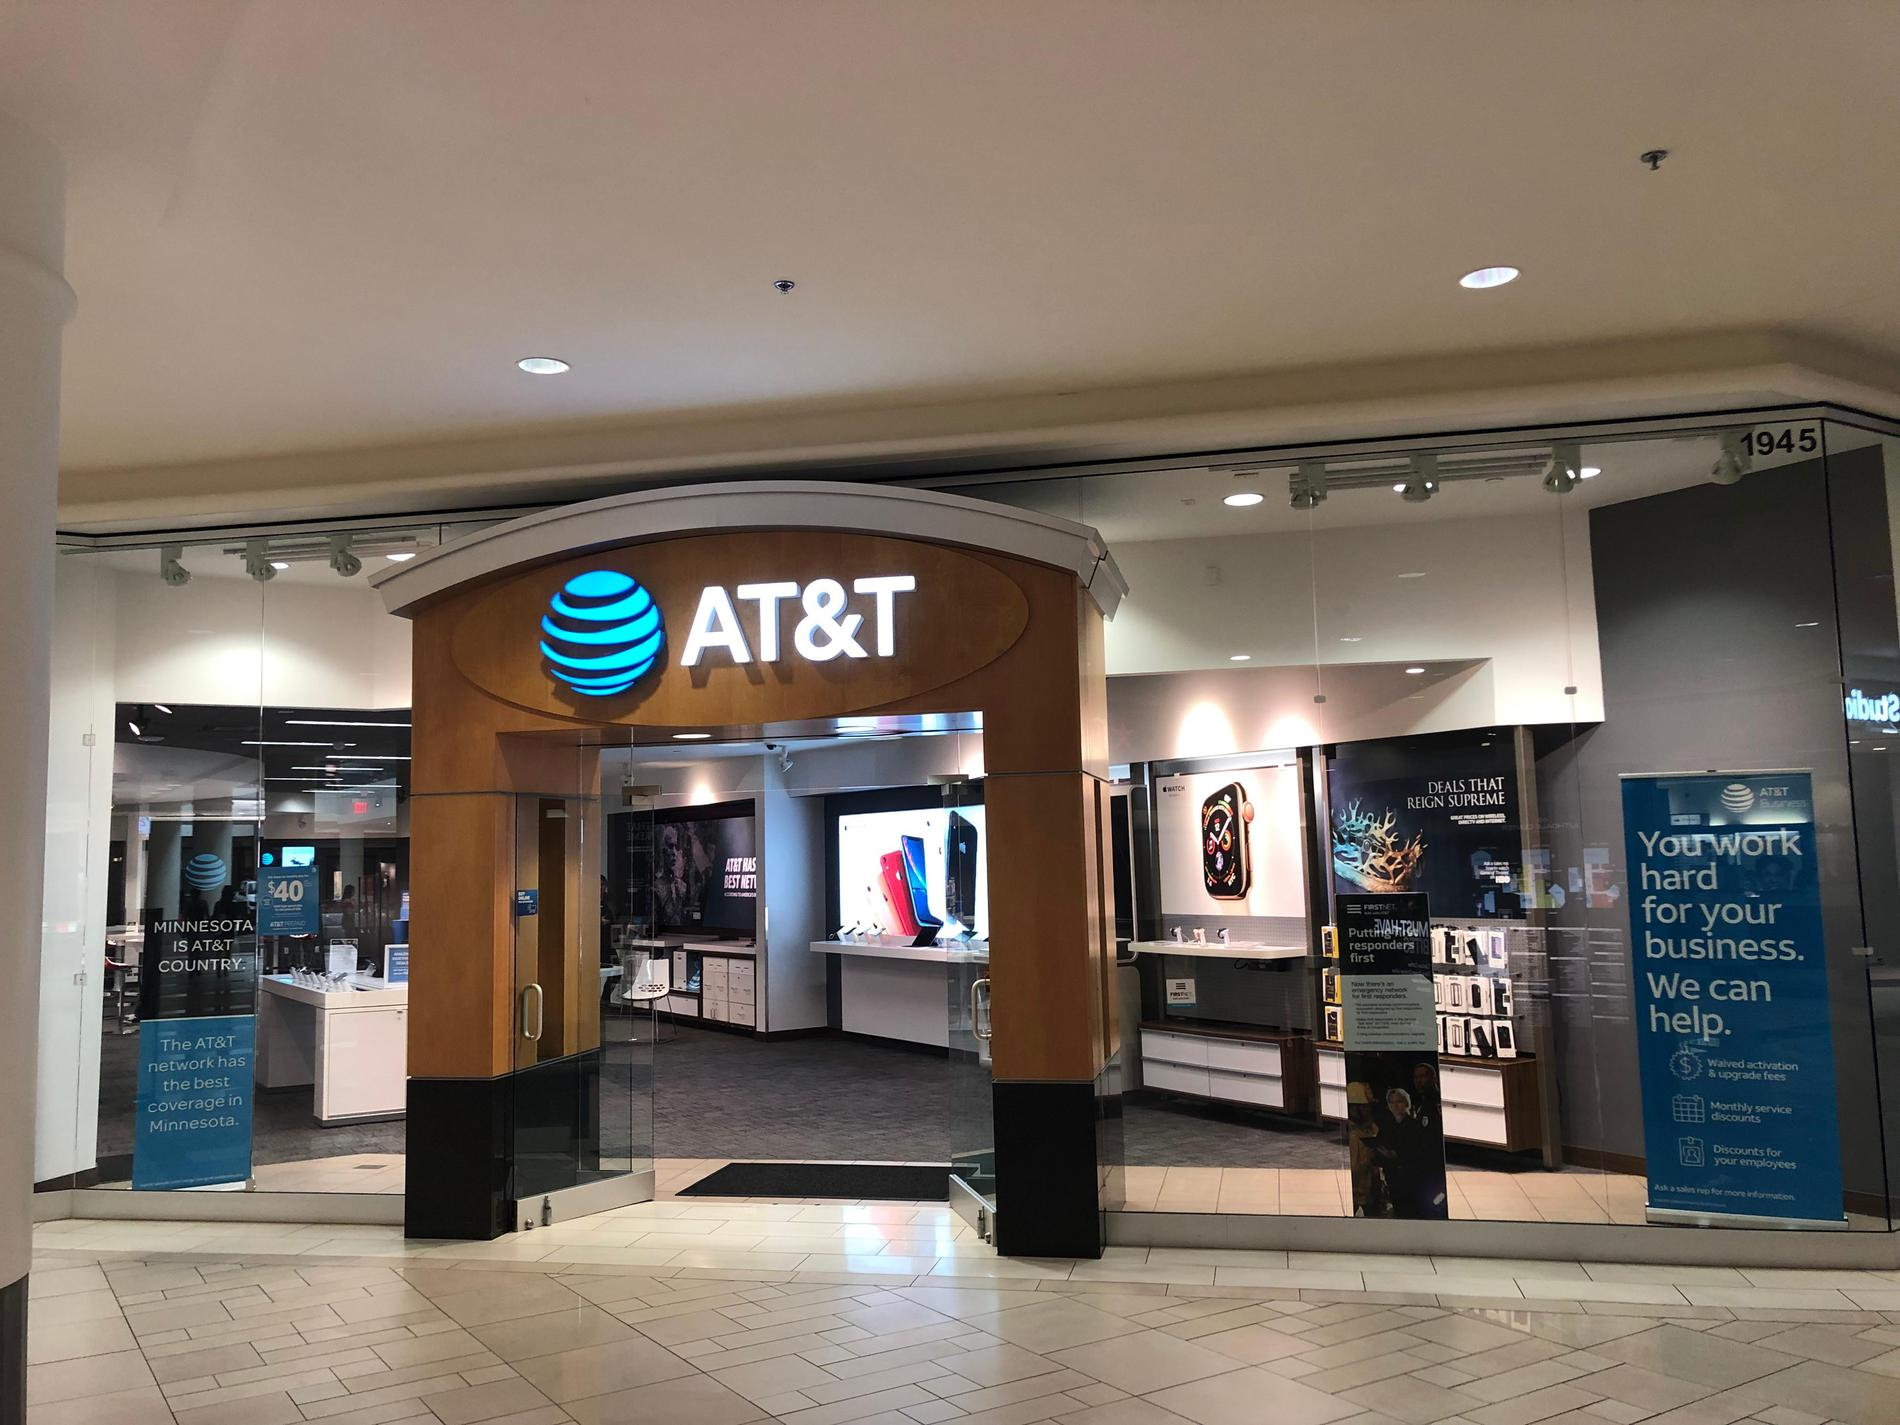 AT&T Store - Southdale Center Mall - Edina, MN